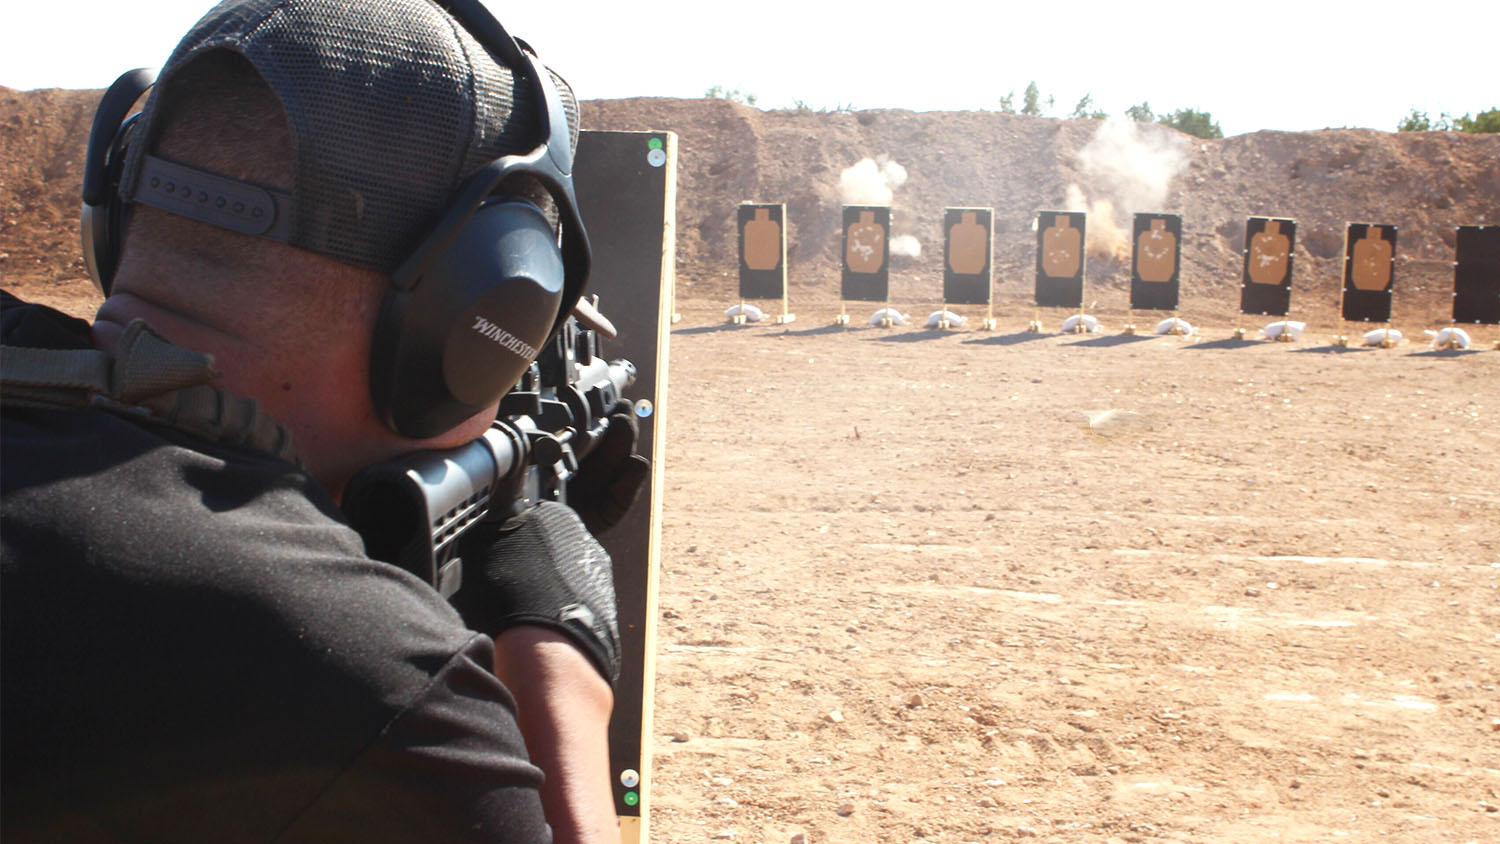 Get Defensive Tactical Training With NRA Outdoors